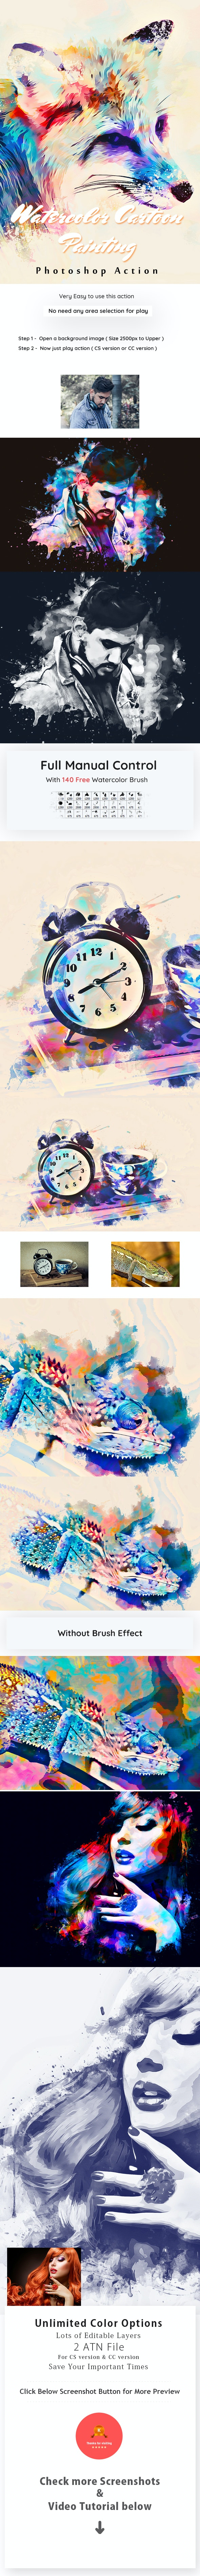 Watercolor Cartoon Painting Action - Photo Effects Actions